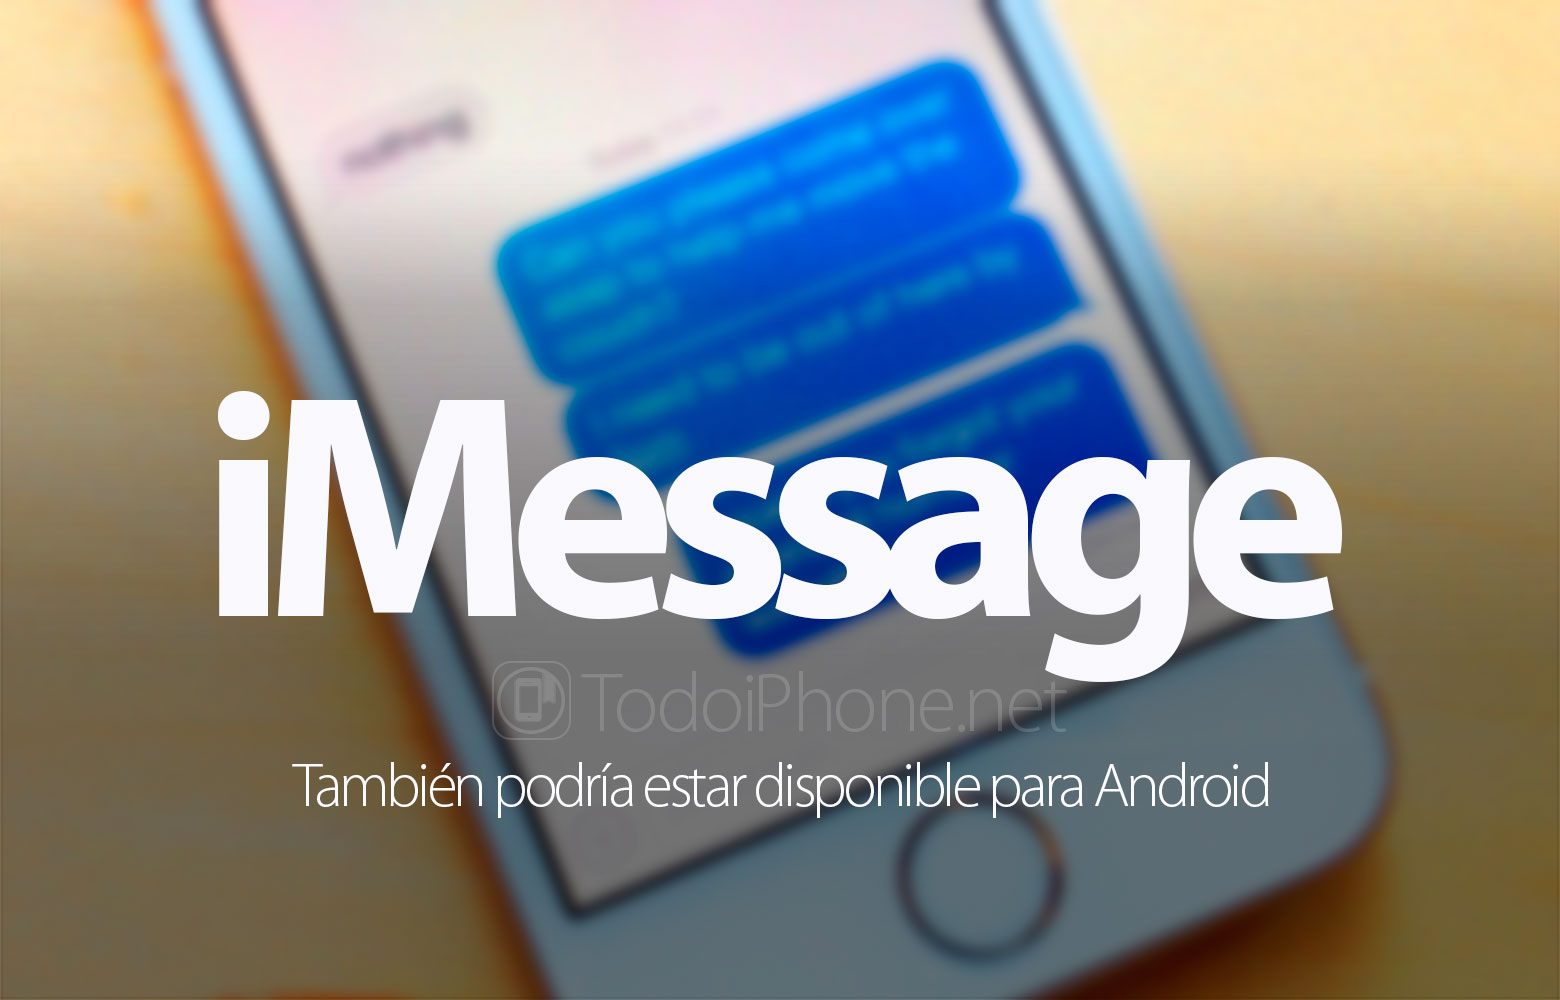 wwdc-2016-imessage-android-rumor